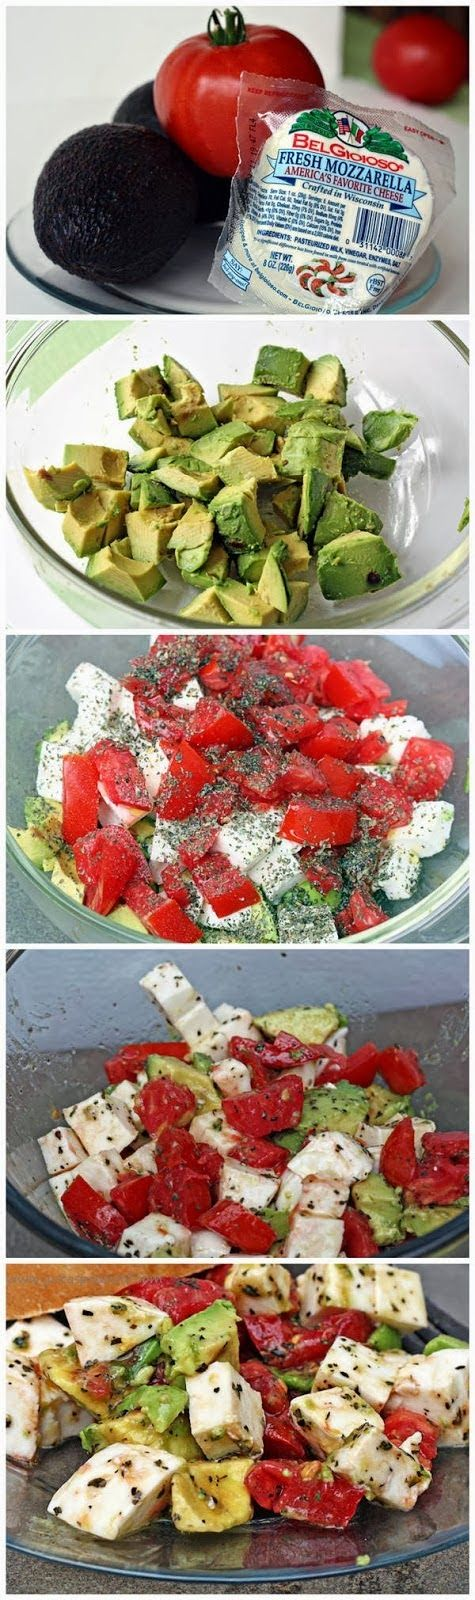 How To Mozzarella Salad Avocado / Tomato/